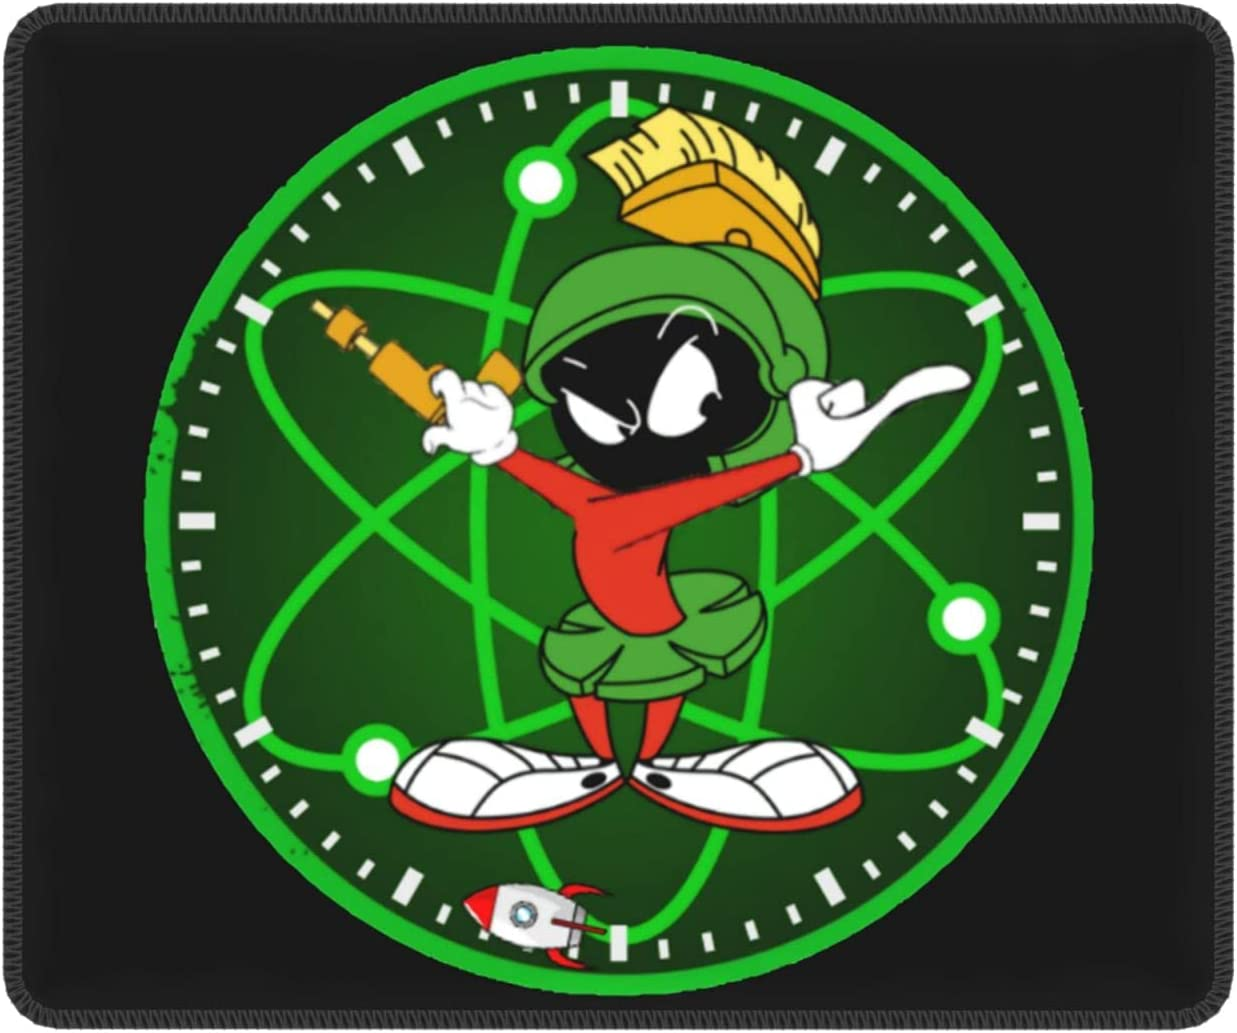 Marvin The Martian Anime Mouse Pad fo Mat We Max 46% OFF OFFer at cheap prices Gaming